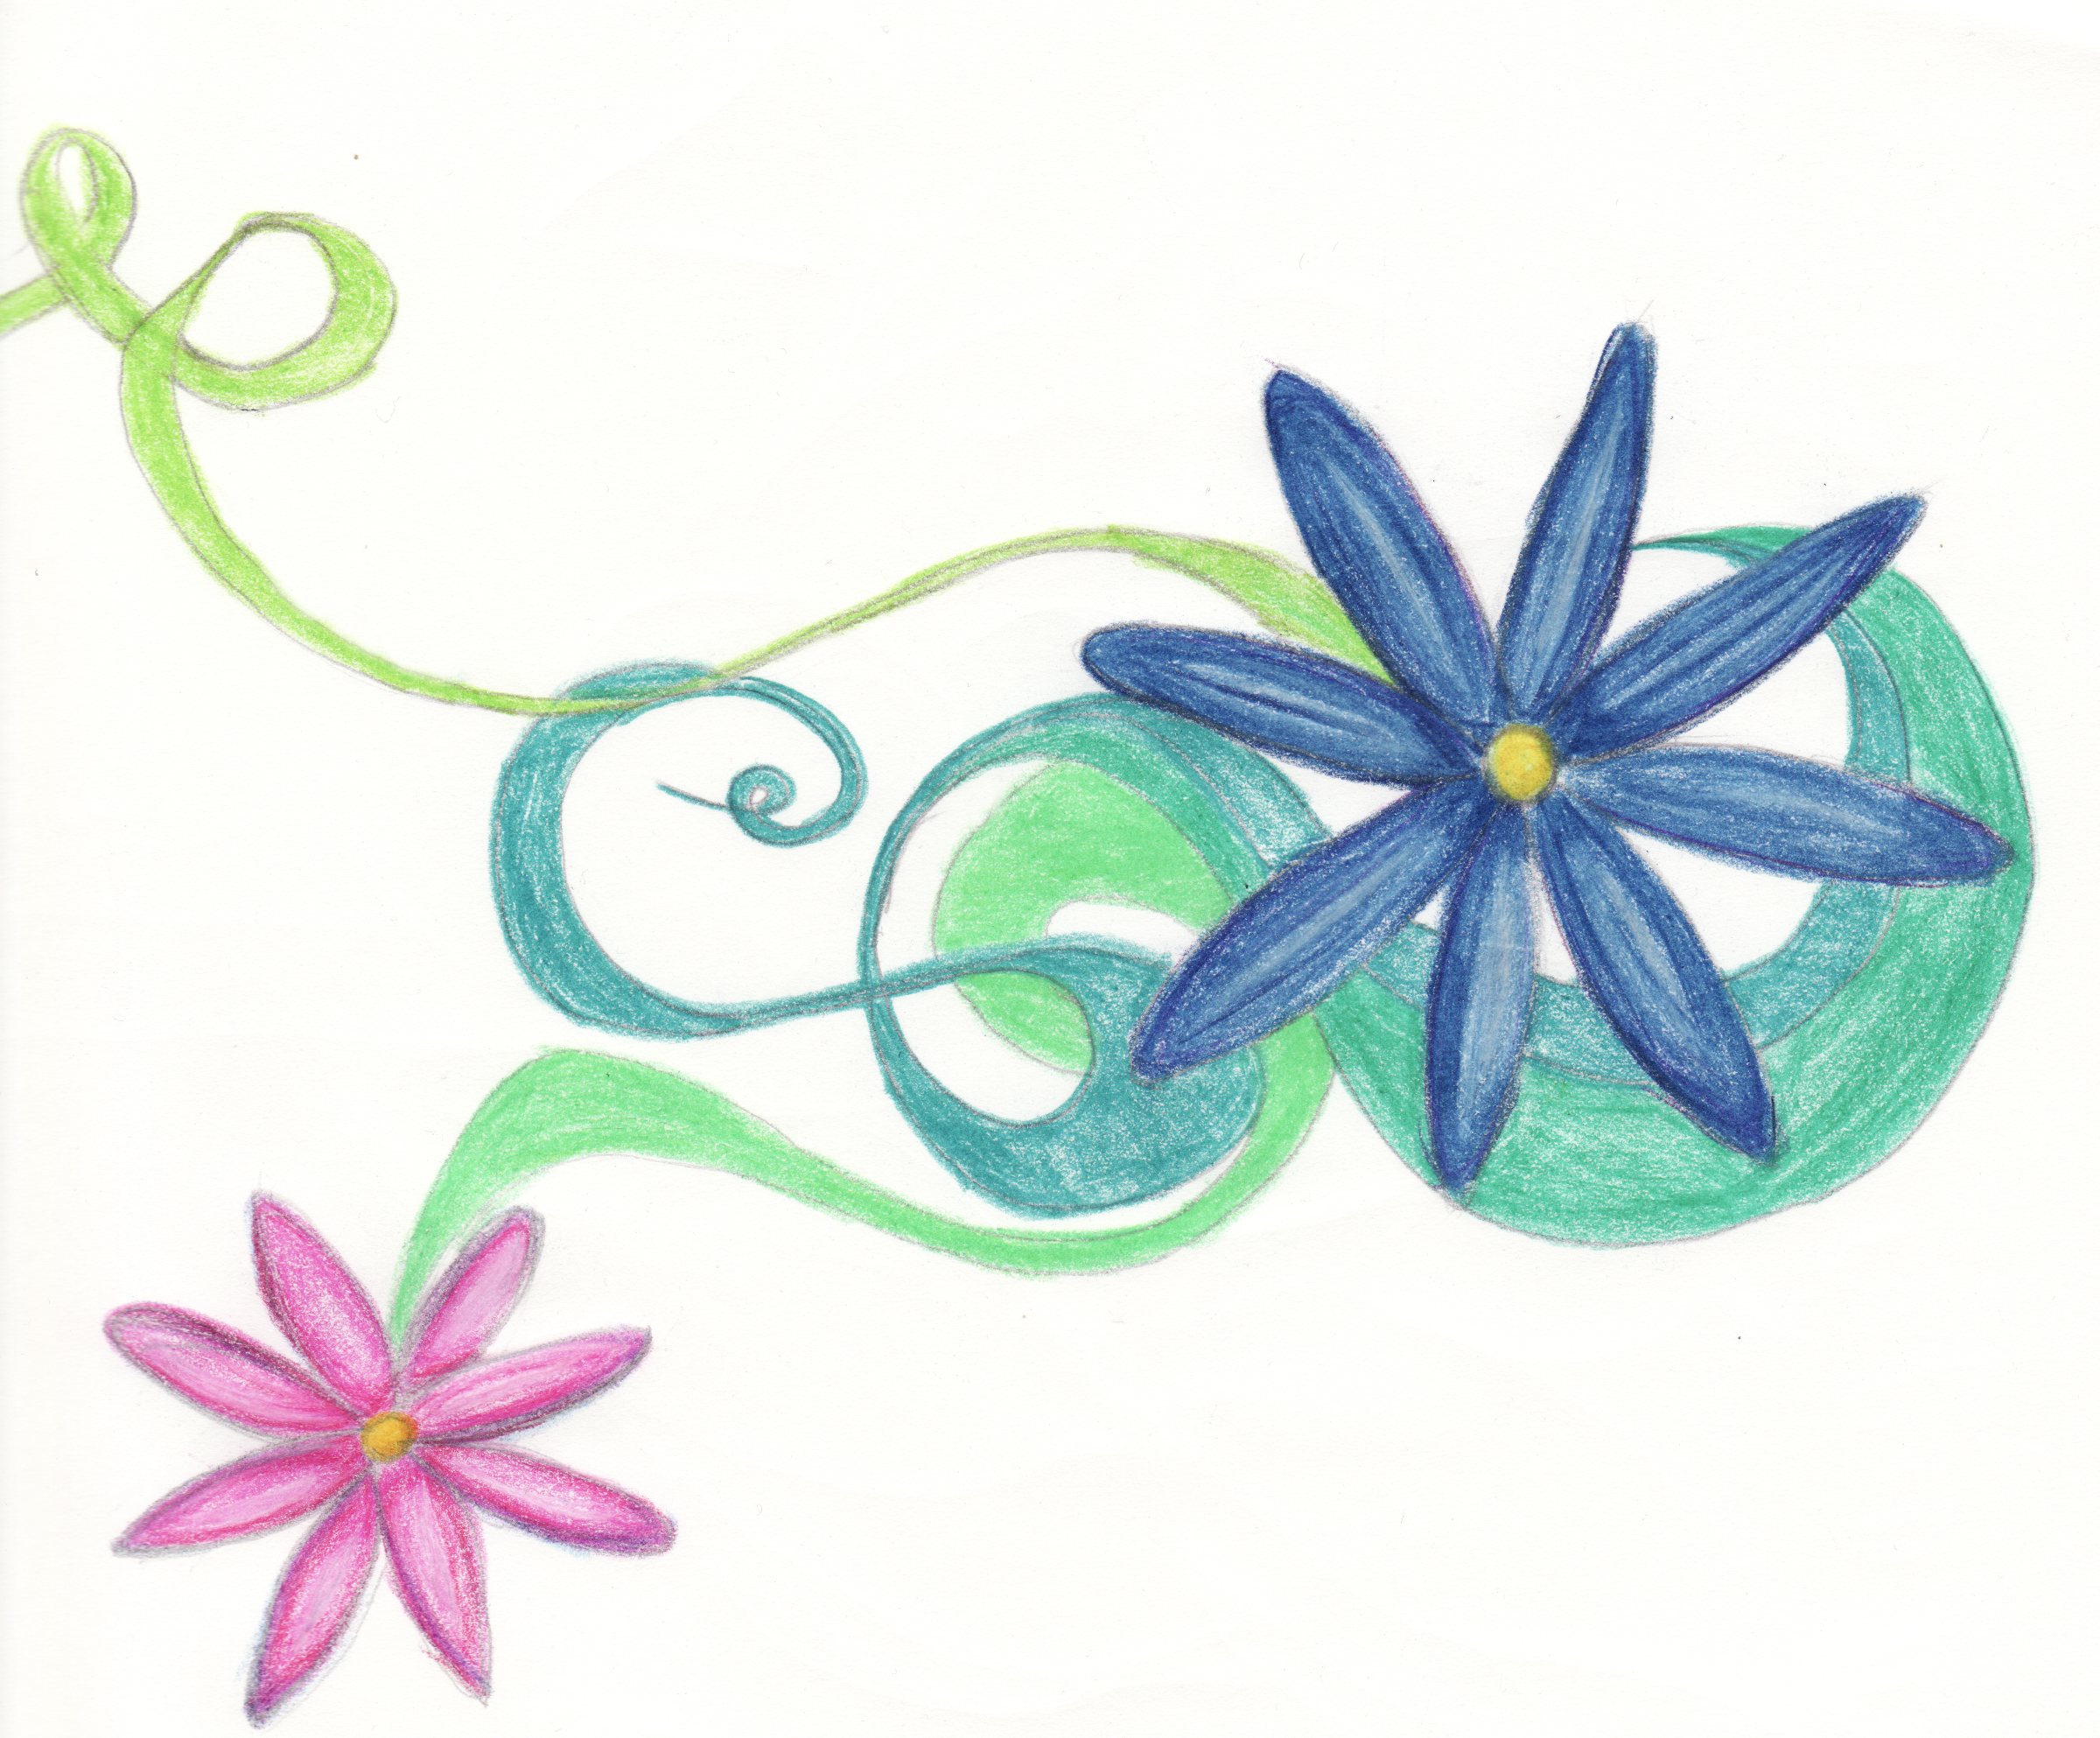 flowers and swirls by kburning traditional art drawings other so in ... Pencil Drawing Pictures Of Flowers